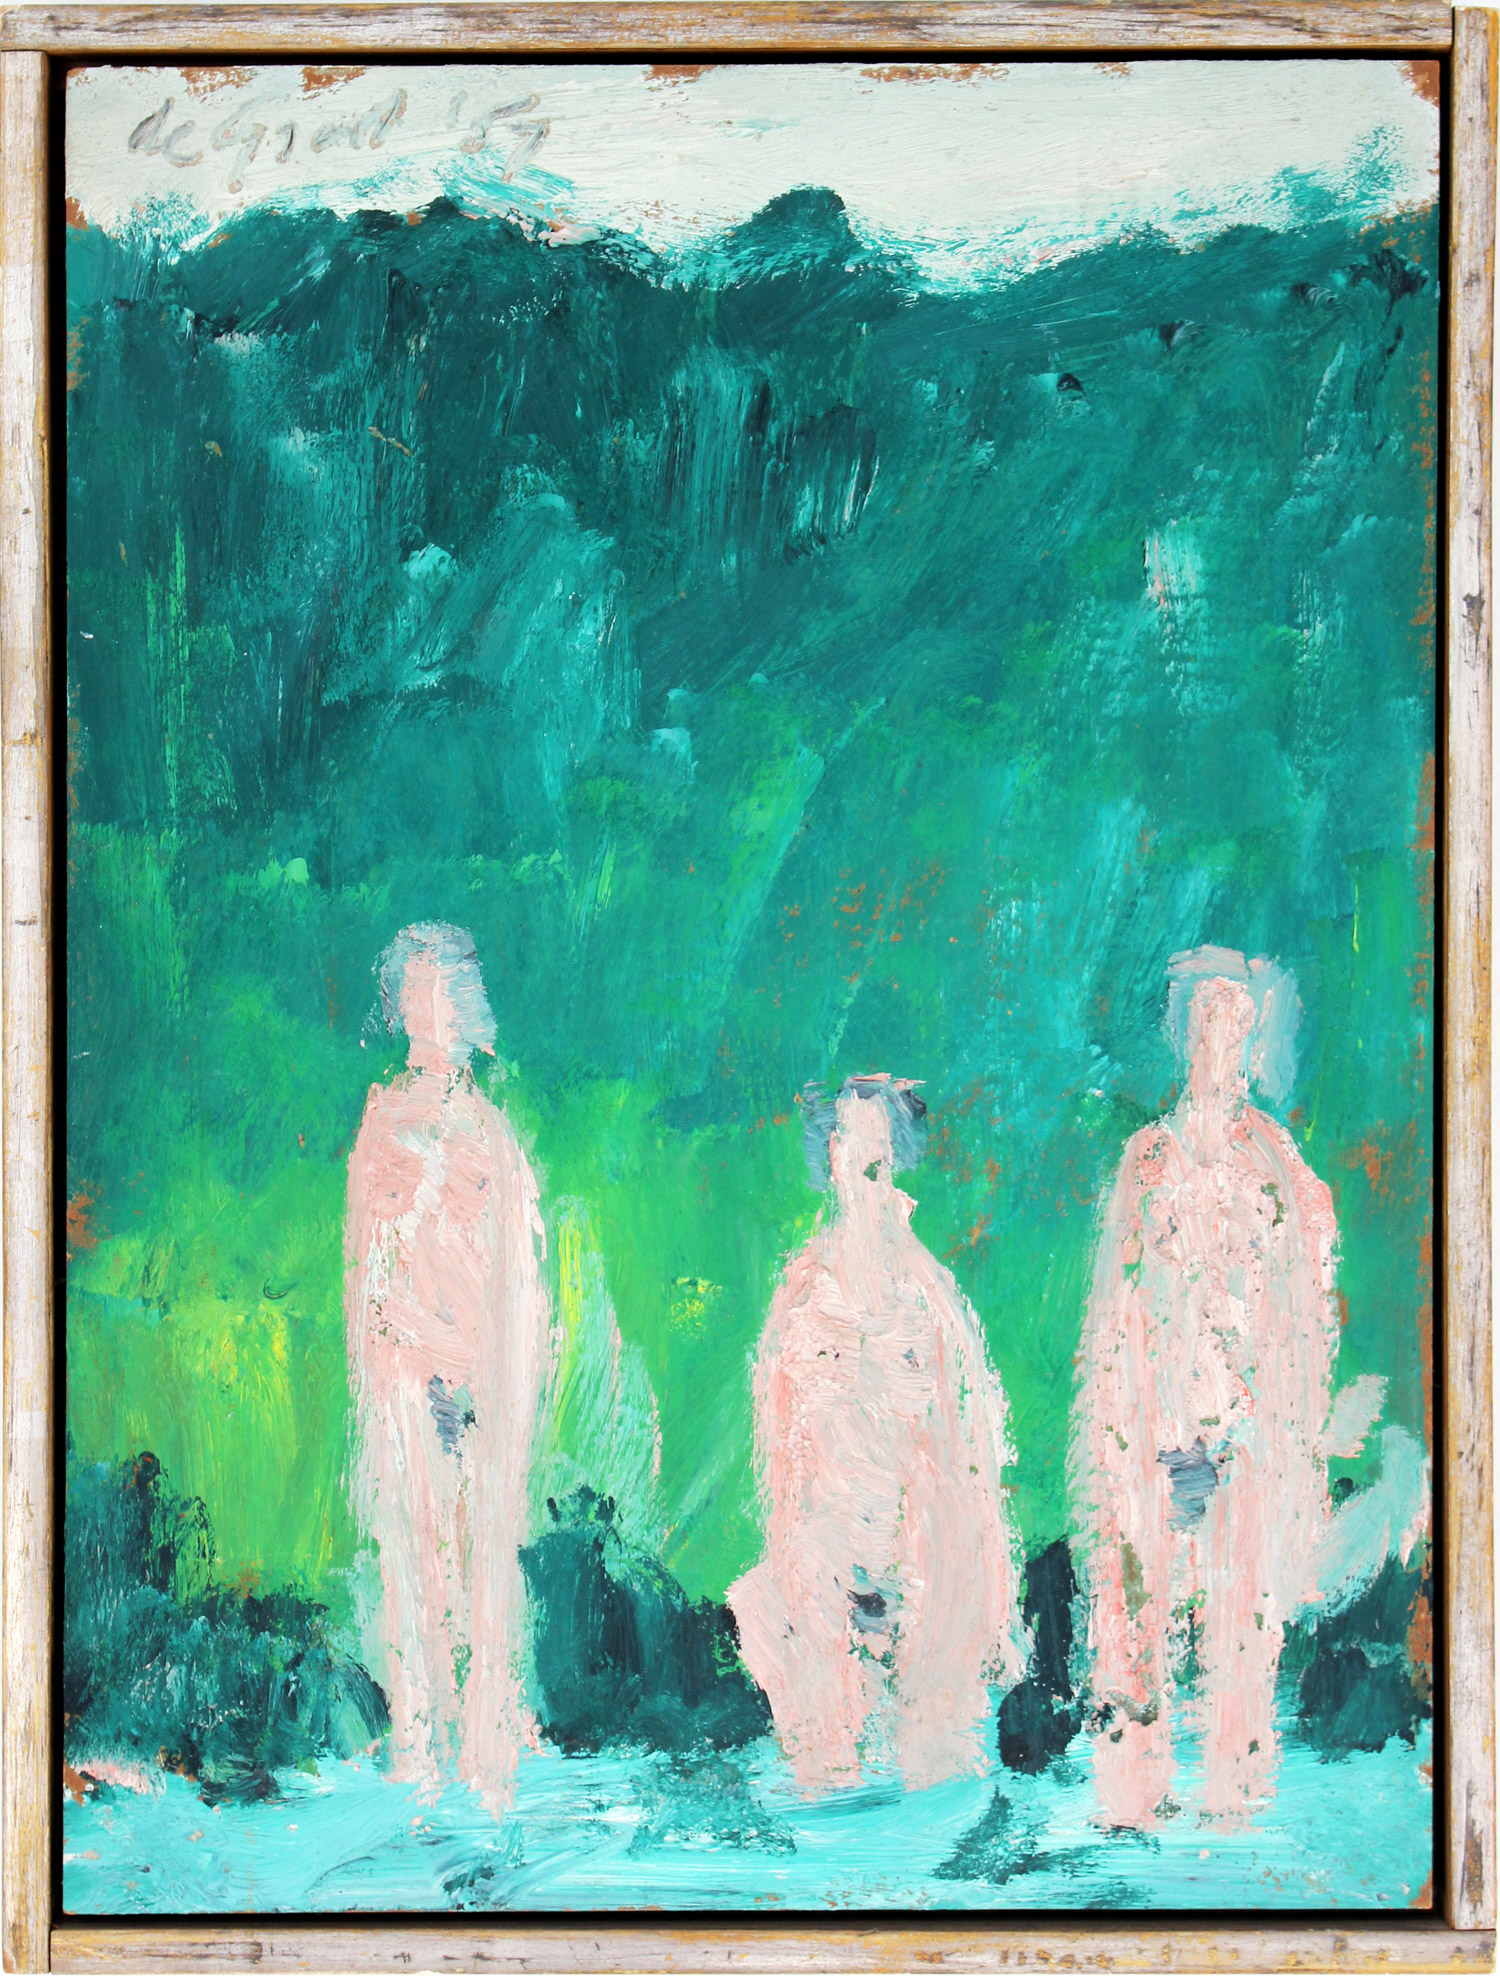 Three Figures in a Landscape, 1957